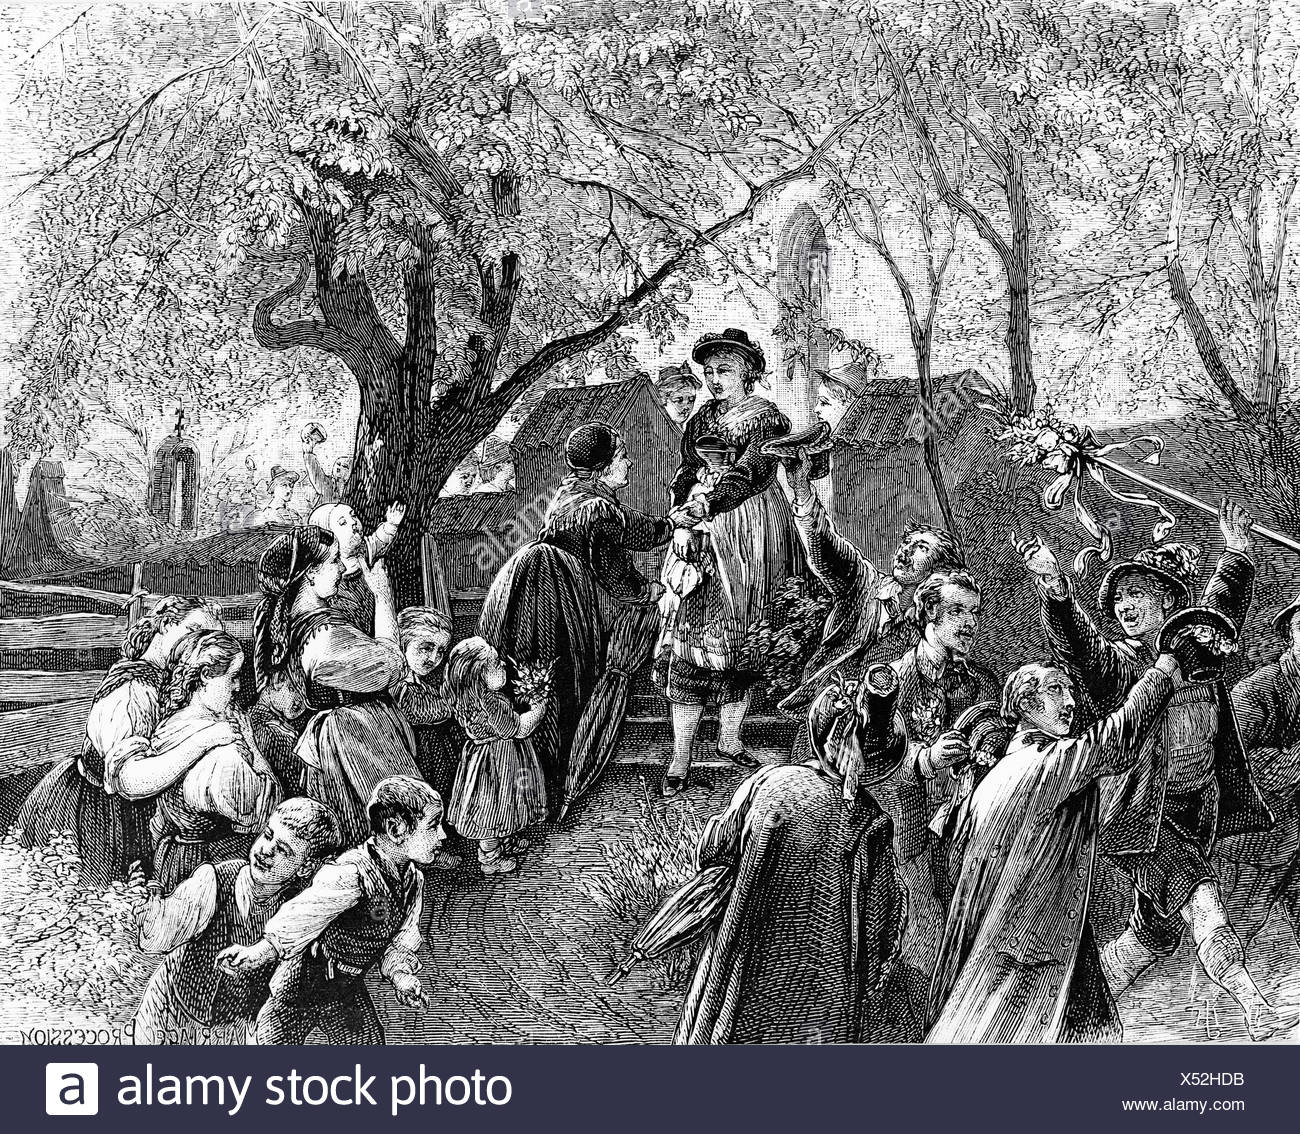 Farmer's wedding in front of the church of Lenggries, engraving, c. 1830, Upper Bavaria, Bavaria - Stock Image